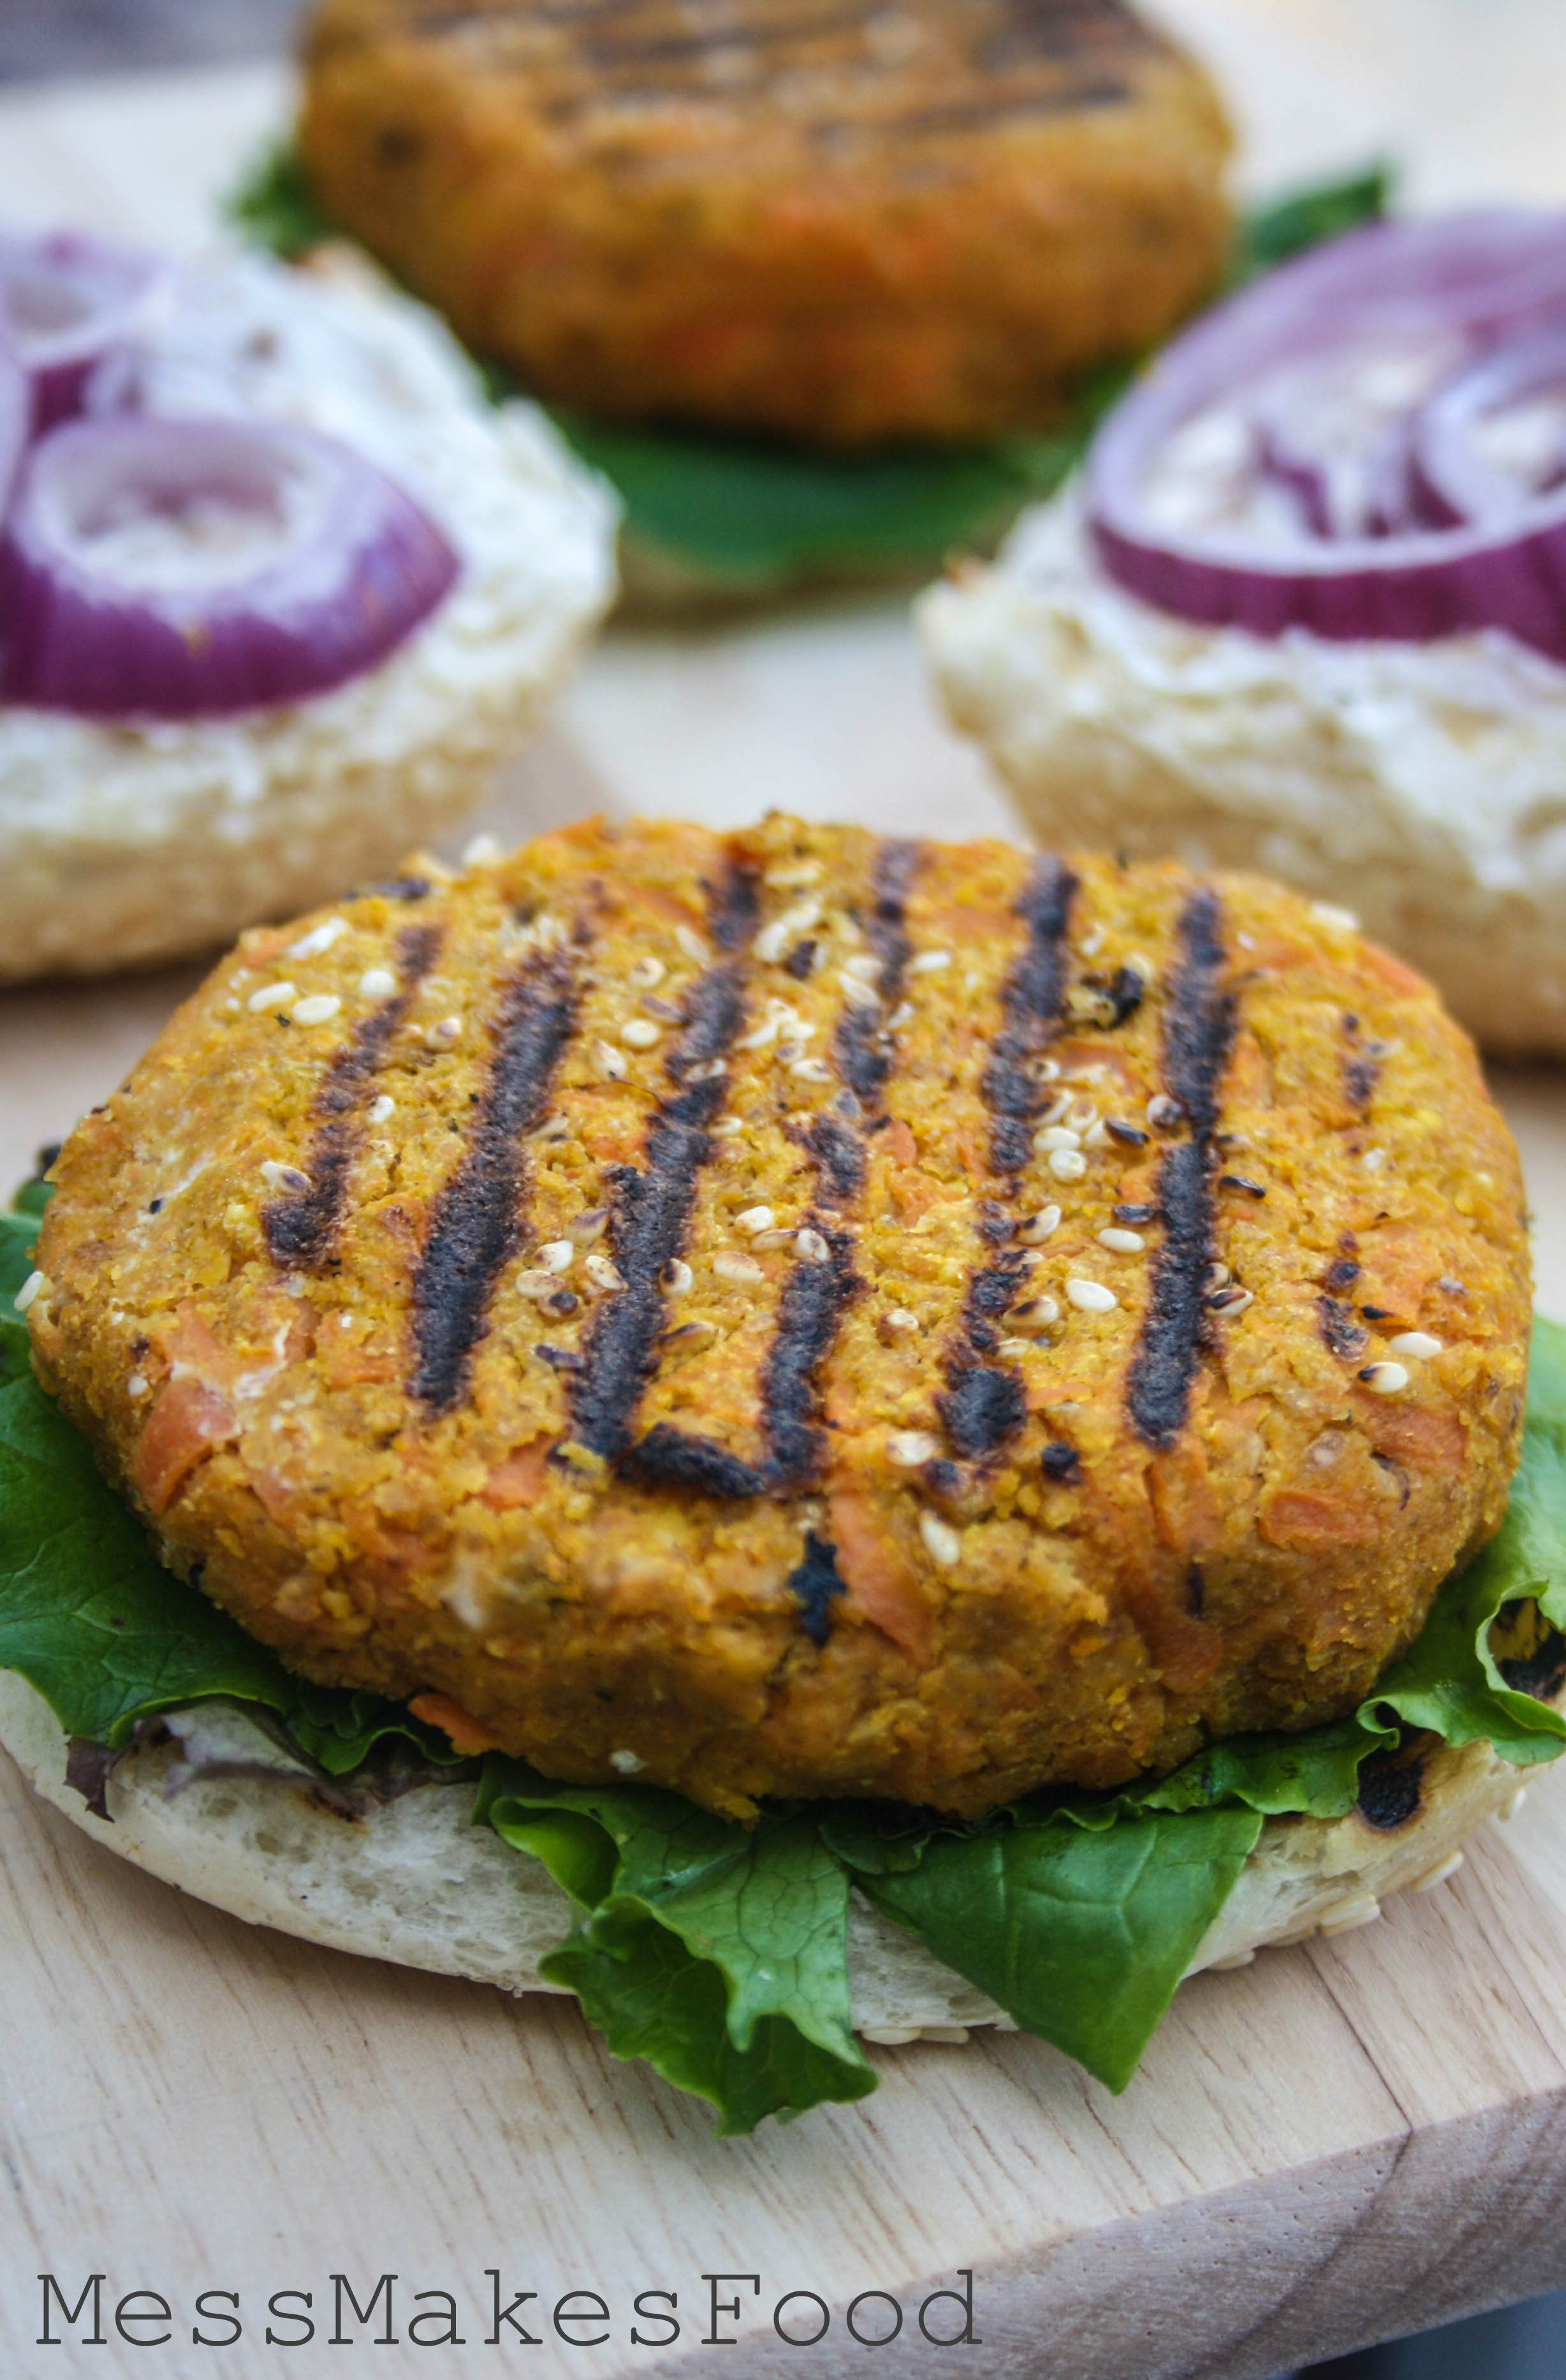 Sesame Carrot and Chickpea Burgers are vegetarian and grill-friendly. Use sprouted-grain breadcrumbs for Phase 3.